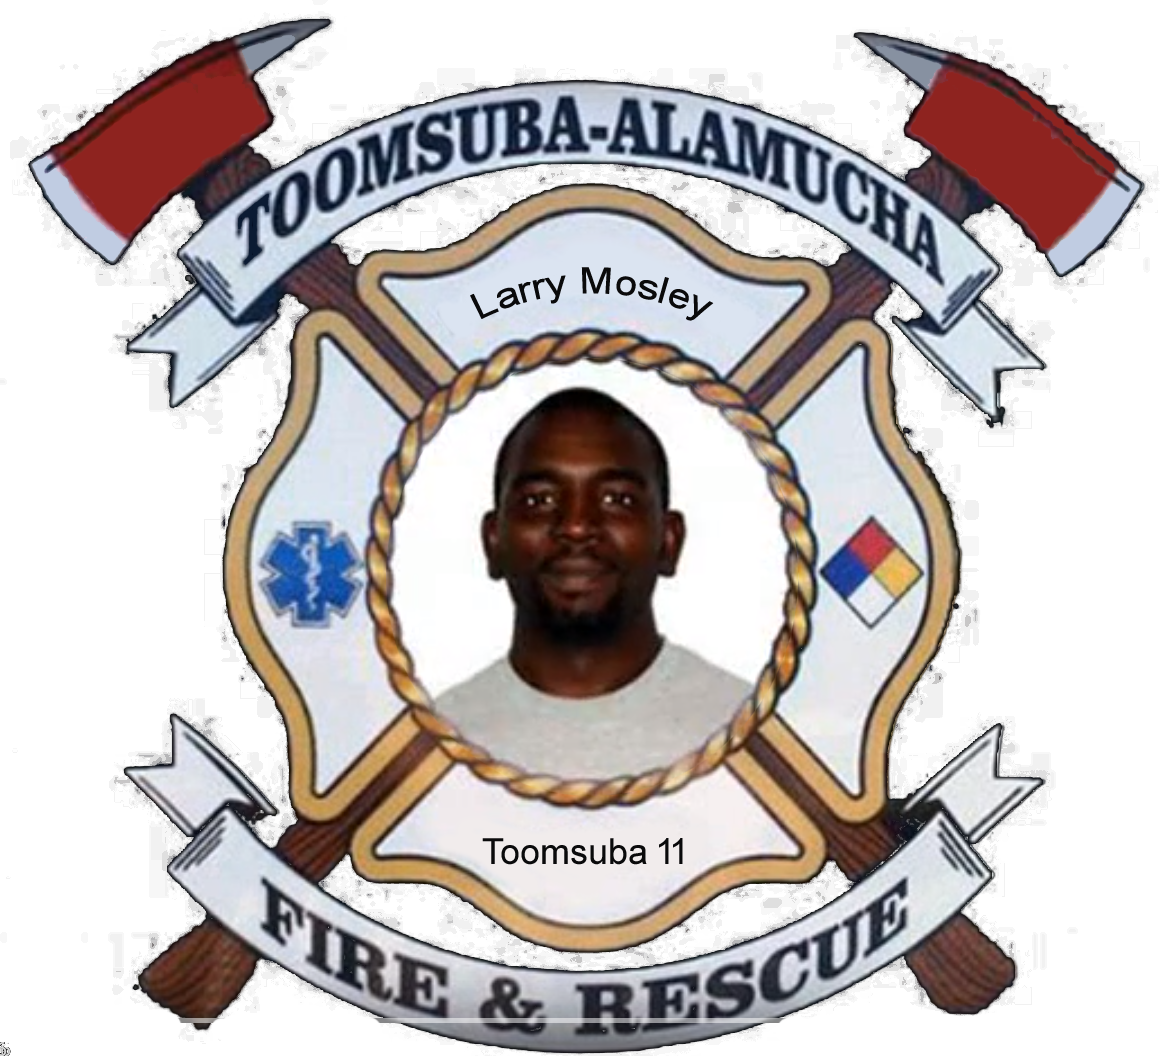 Larry Mosley; Toomsuba Firefighter